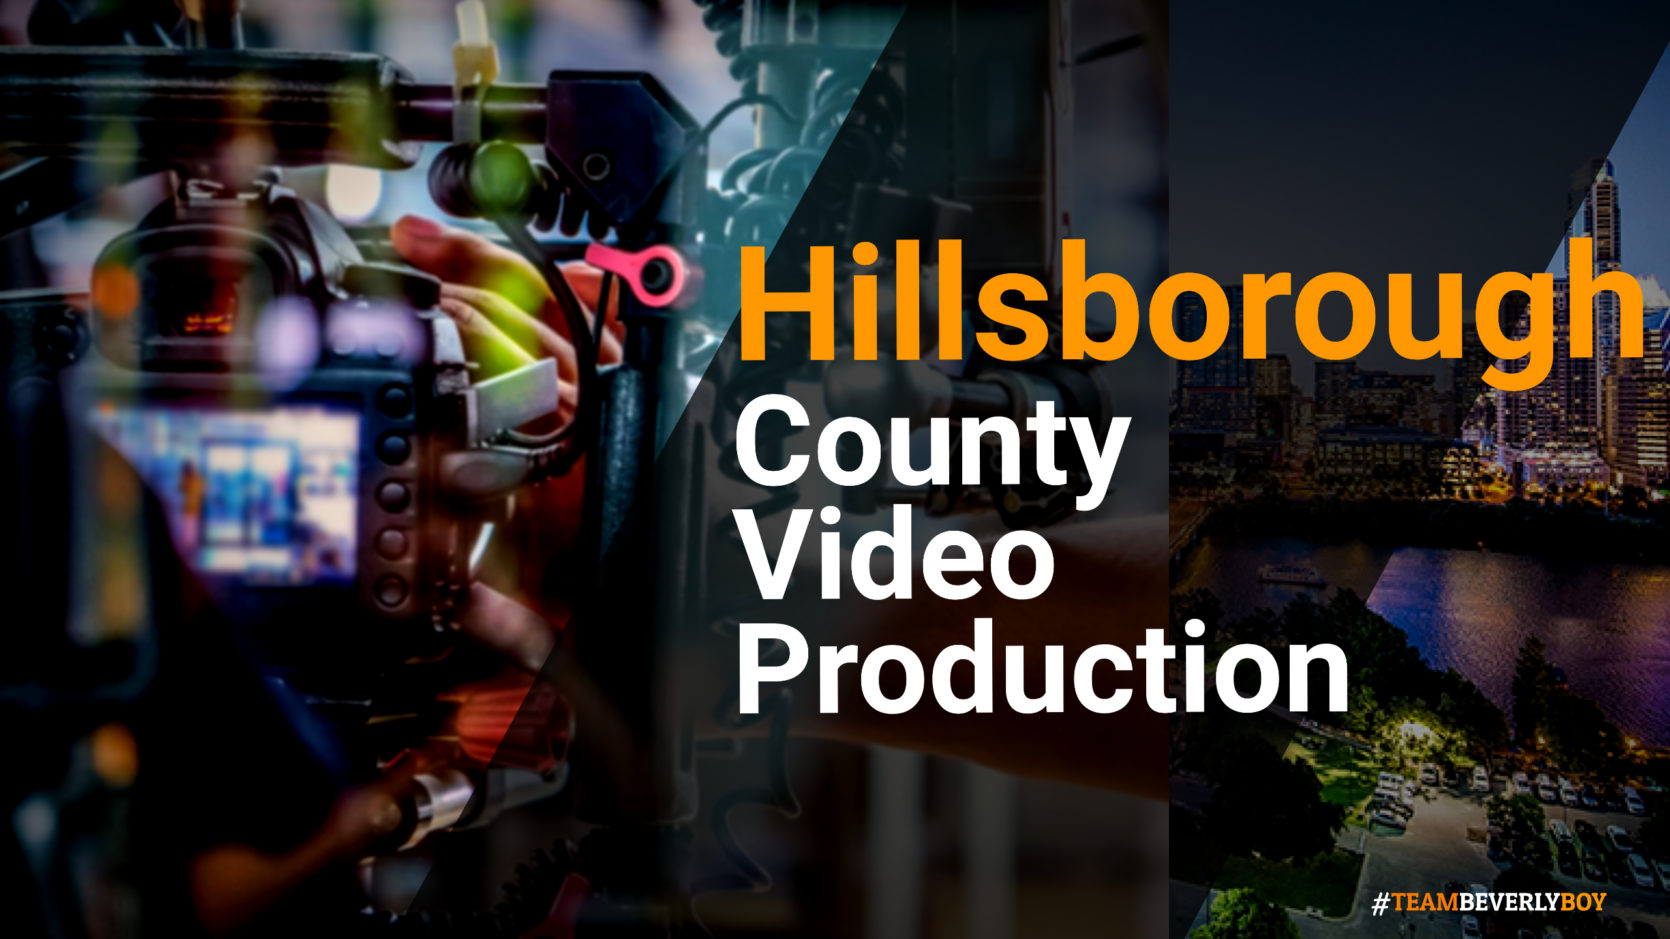 Hillsborough County Video Production